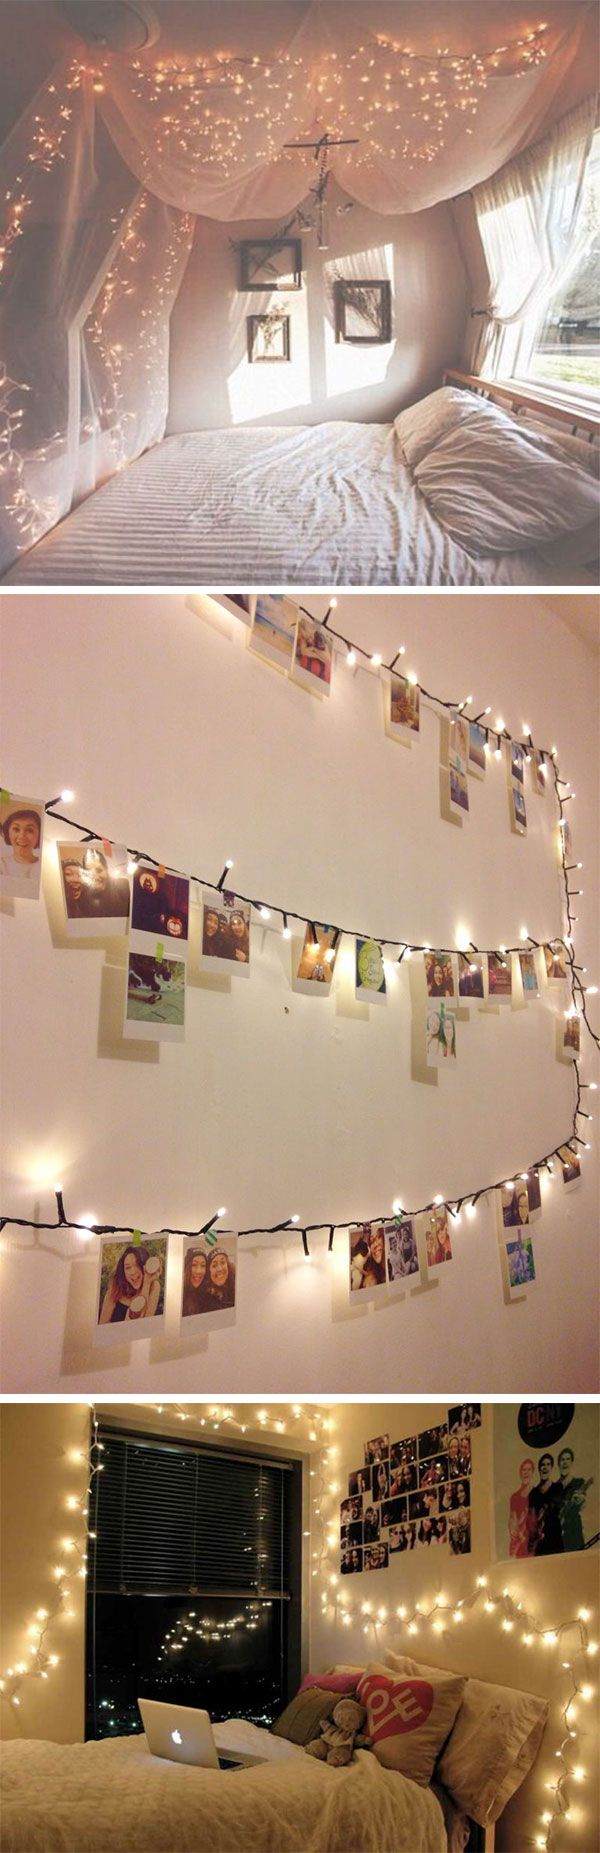 cool diy bedroom ideas. Contemporary Diy 13 Ways To Use Fairy Lights Make Your Bedroom Look Magical  Pinterest  Fairy Bedrooms And Inspiration Inside Cool Diy Bedroom Ideas